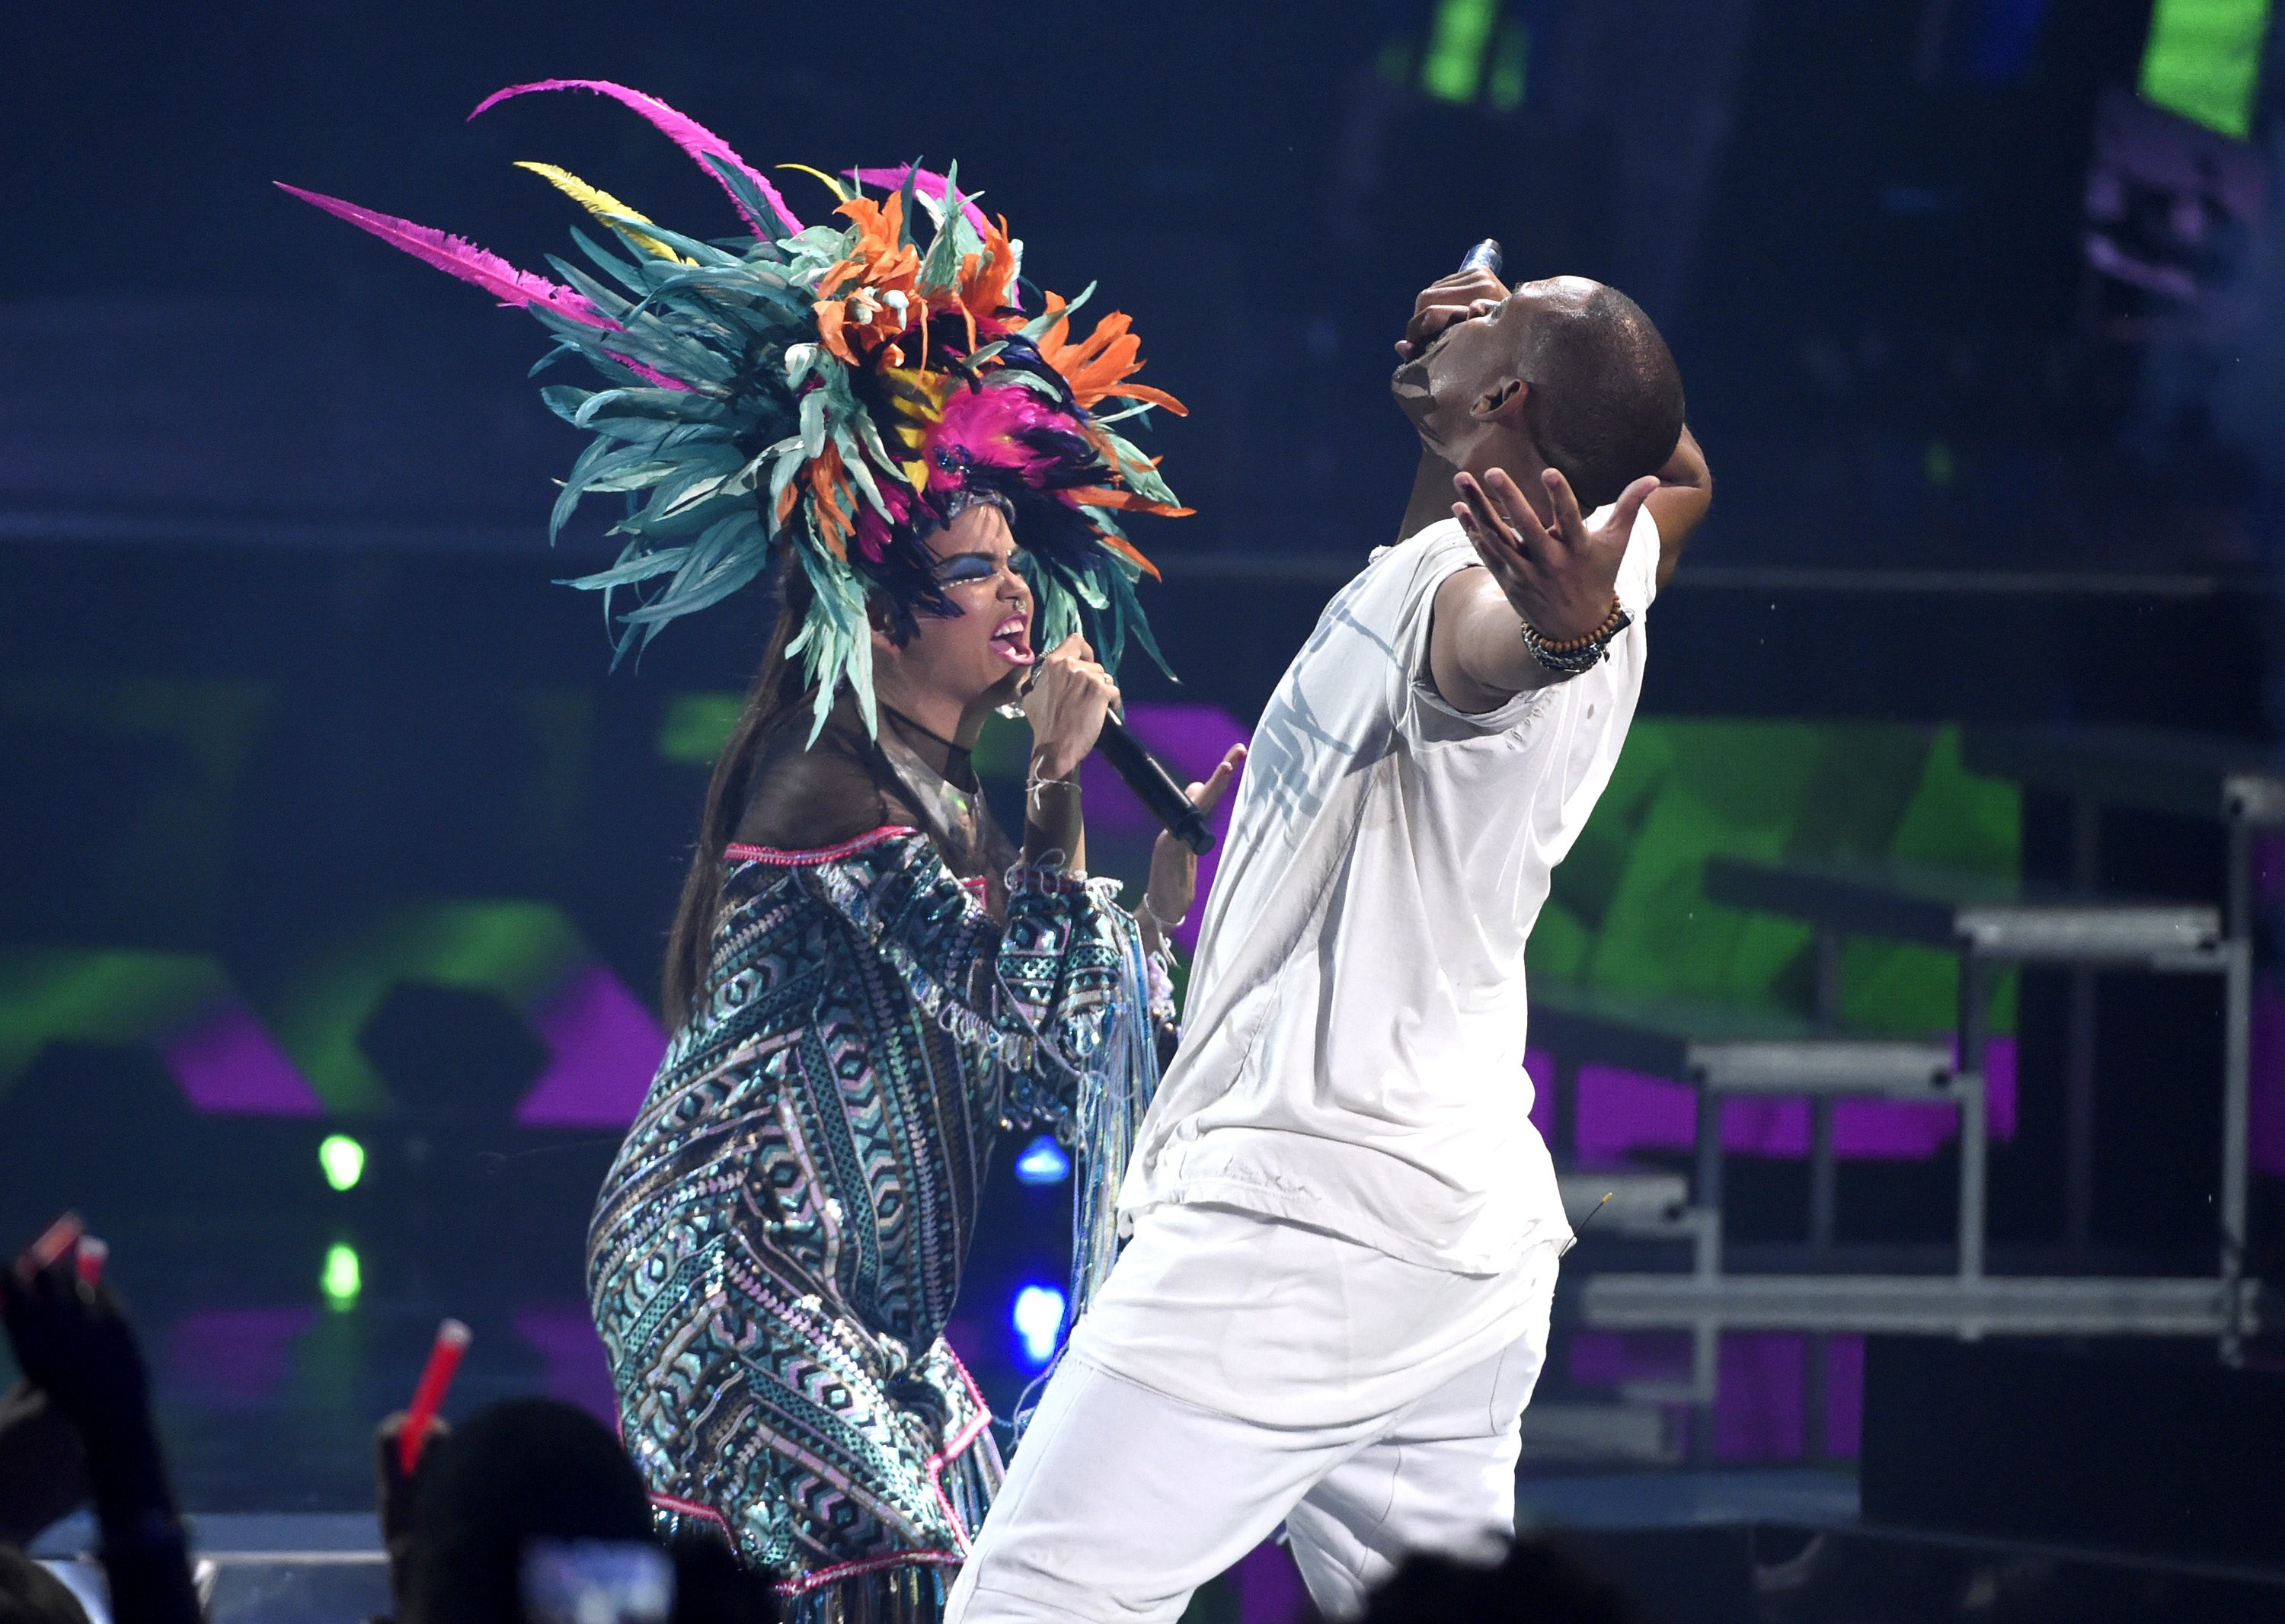 """Liliana Saumet, of Bomba Estereo, and Will Smith perform """"Fiesta"""" at the 16th annual Latin Grammy Awards at the MGM Grand Garden Arena on Thursday, Nov. 19, 2015, in Las Vegas. (Photo by Chris Pizzello/Invision/AP)"""